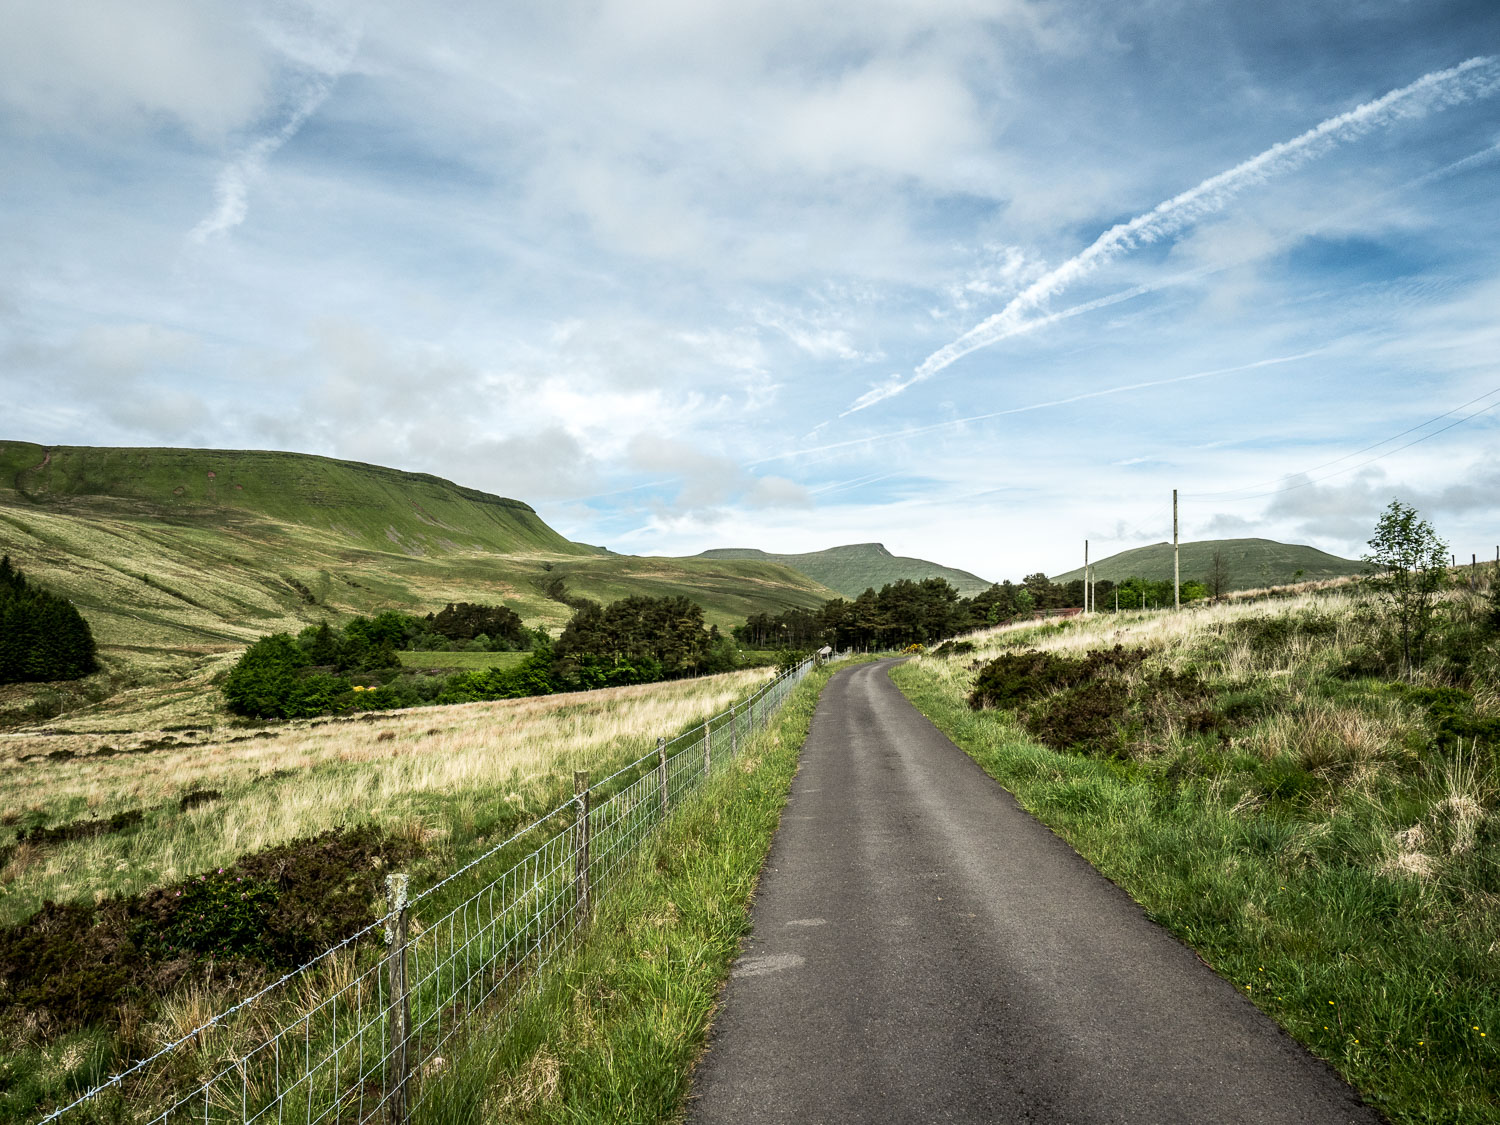 A Photograph Showing The Road Leading To The Trailhead For Pen Y Fan In The Neuadd Valley, Brecon Beacons National Park, Wales.